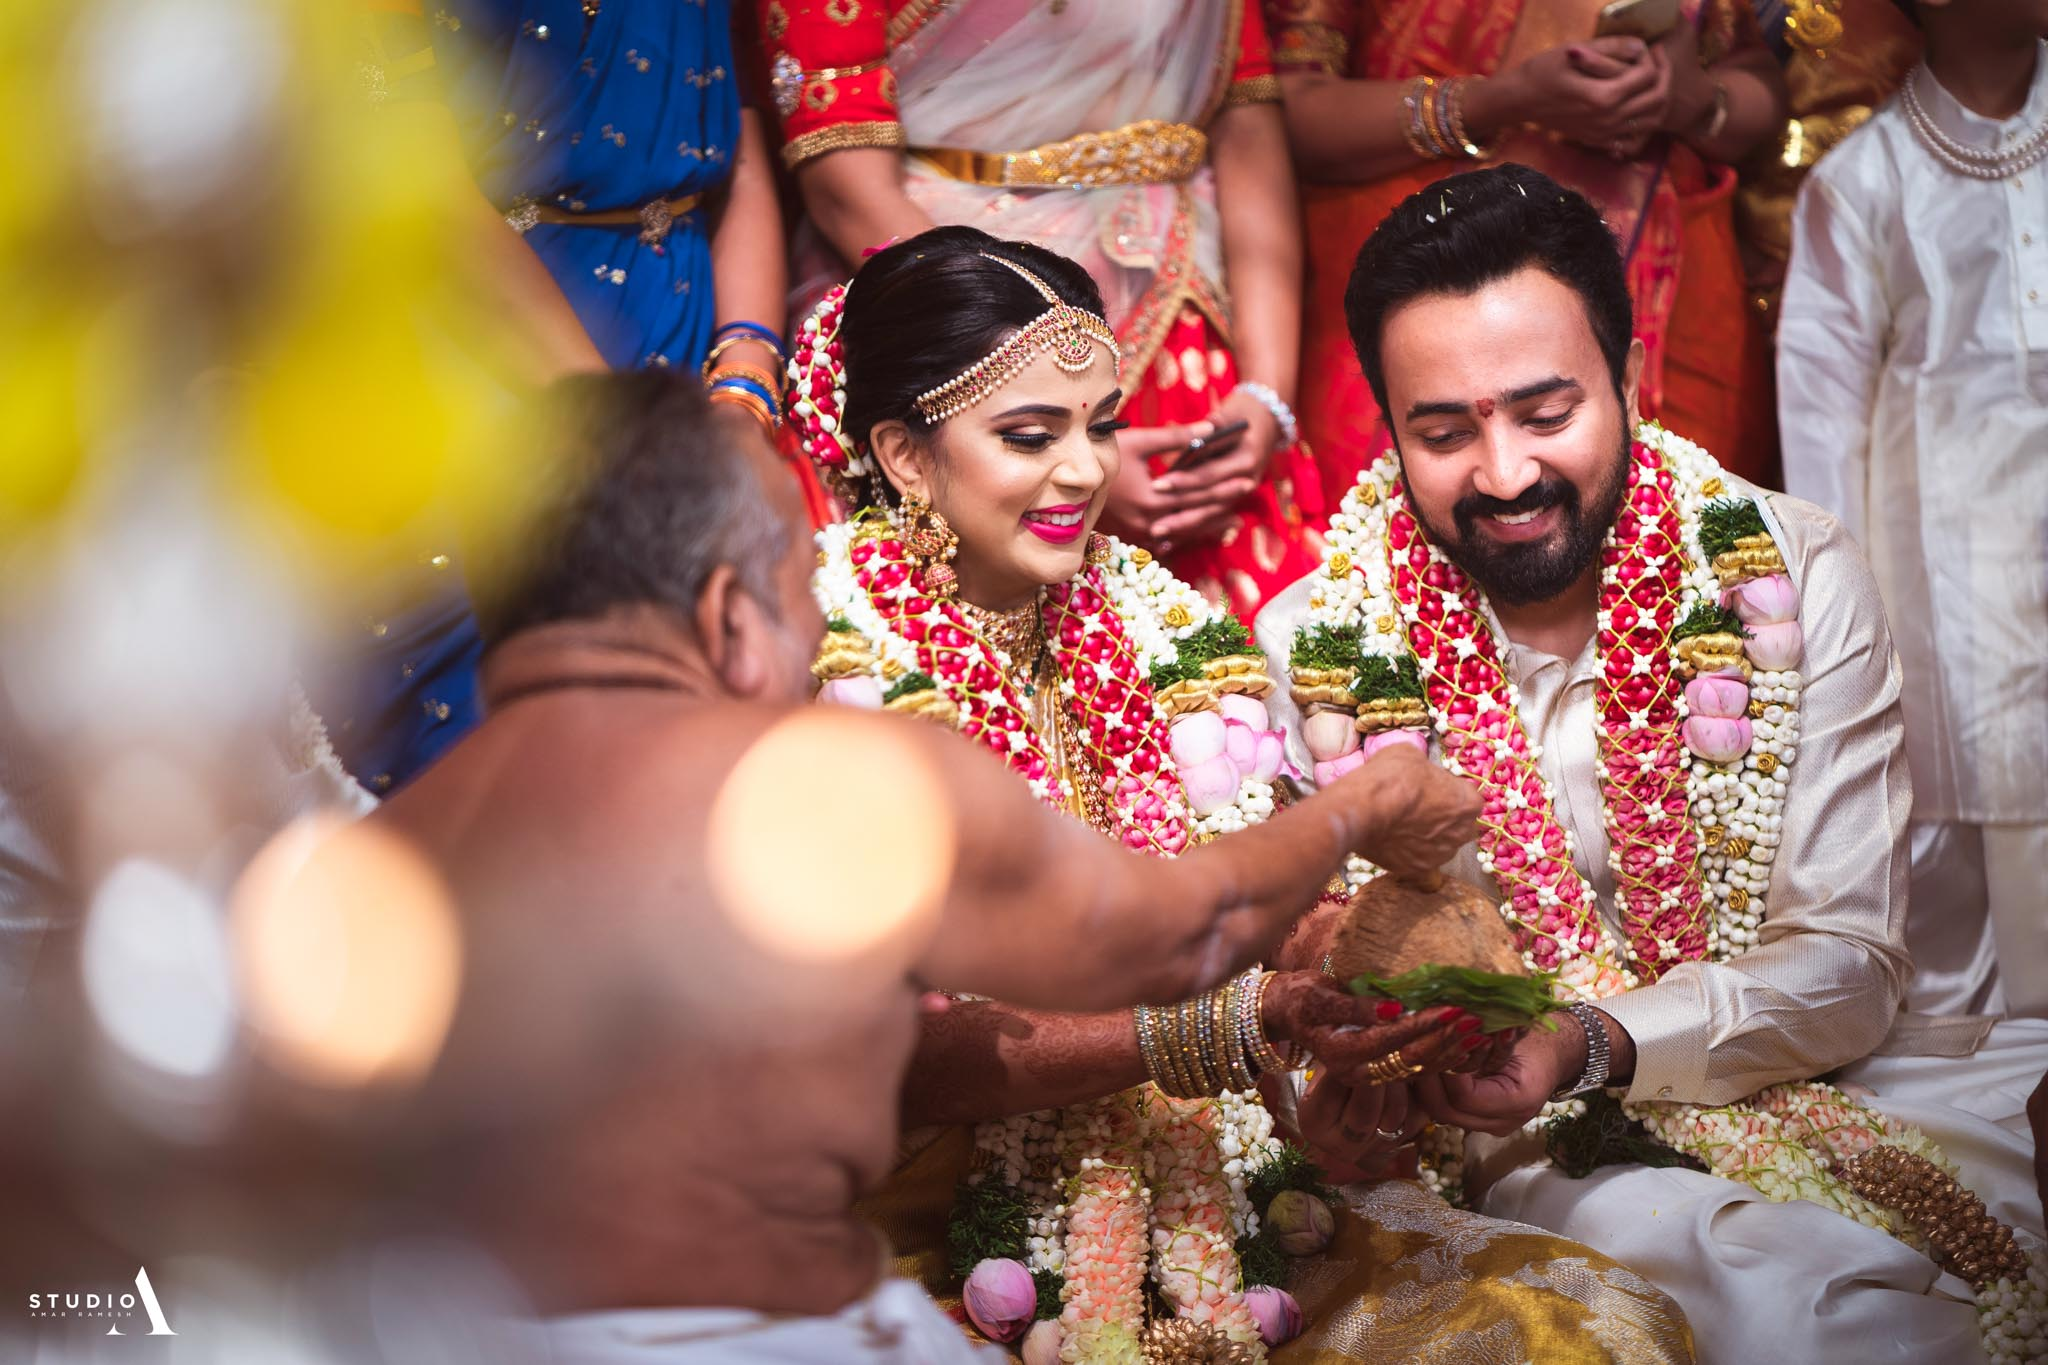 best-candid-wedding-photography-studioa-chennai-16